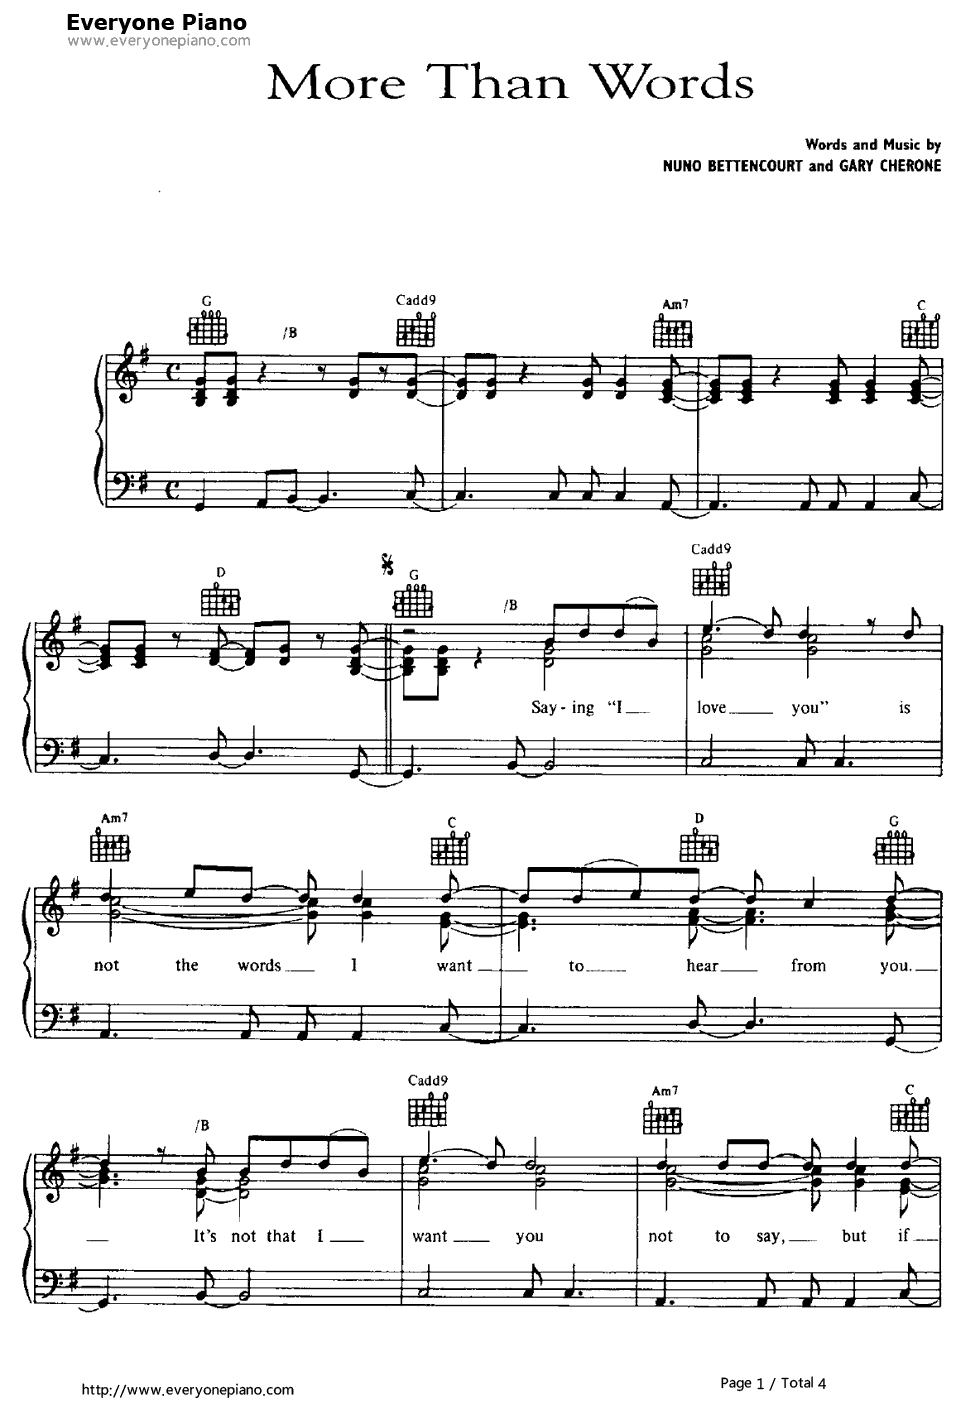 More than words extreme stave preview 1 free piano sheet music listen now print sheet more than words extreme stave preview 1 hexwebz Images